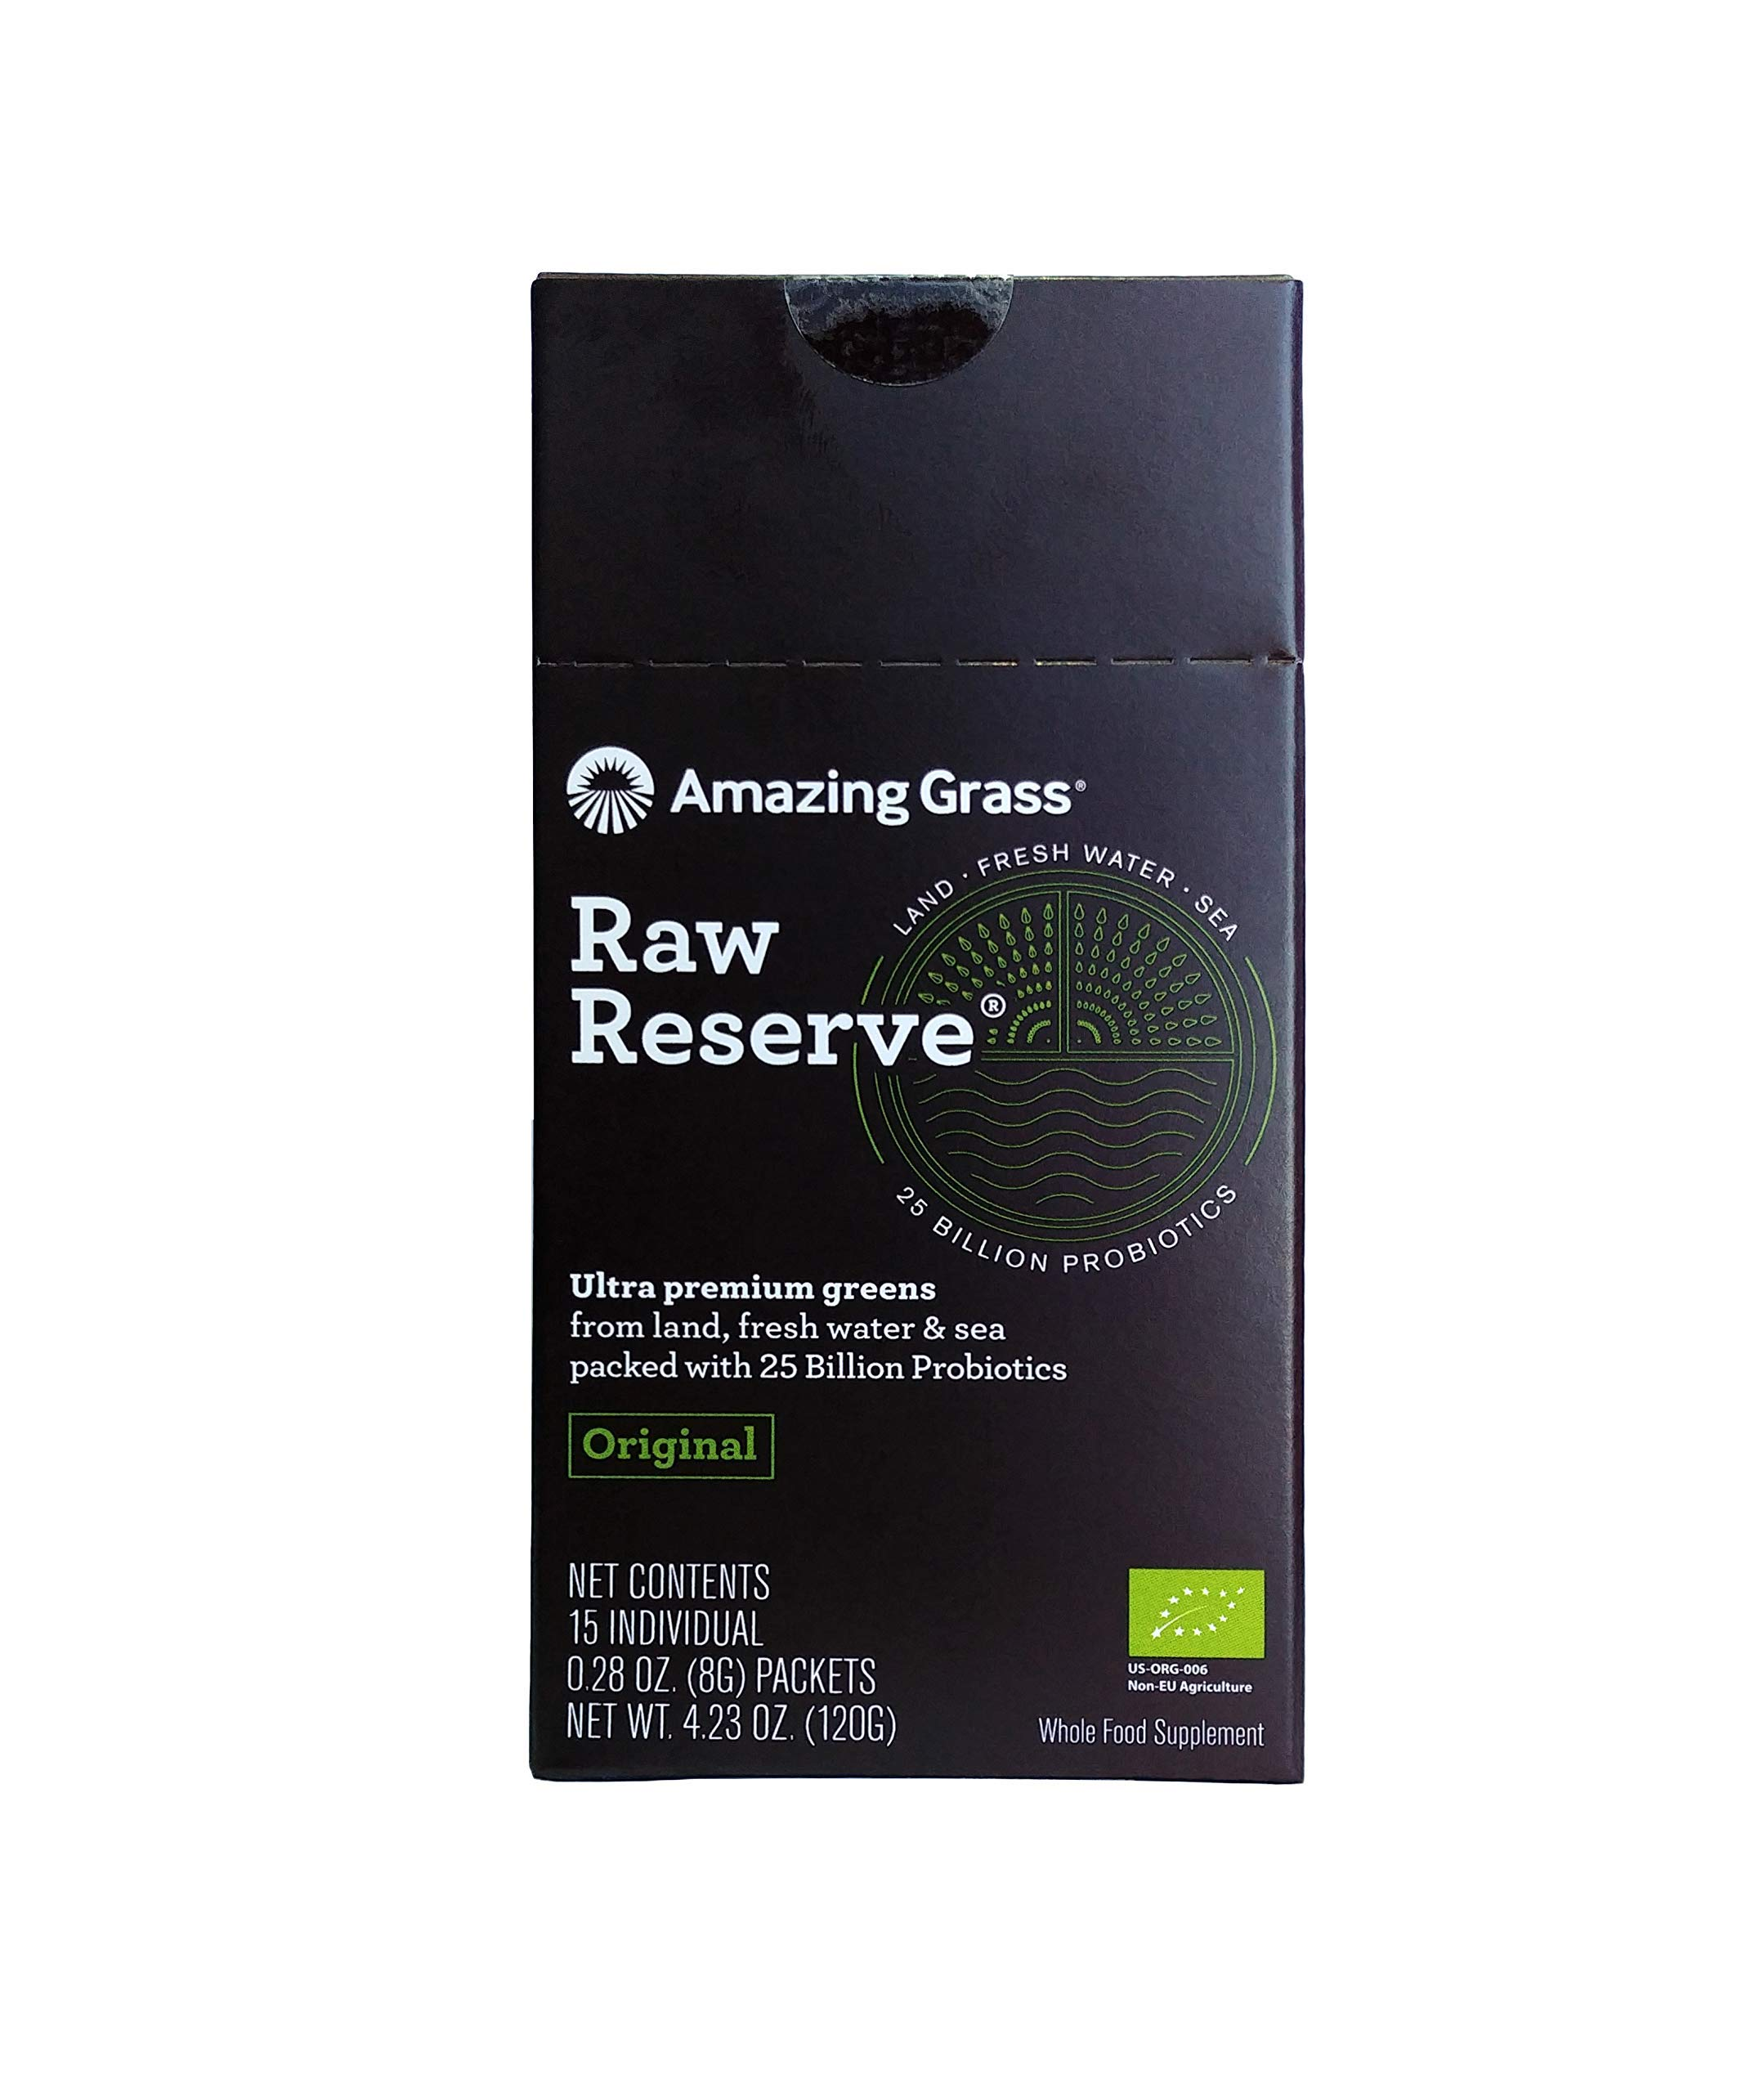 Amazing Grass, Raw Reserve Green Superfood Organic Powder with Wheat Grass and Greens, Flavor: Original, Box of 15 Individual Servings